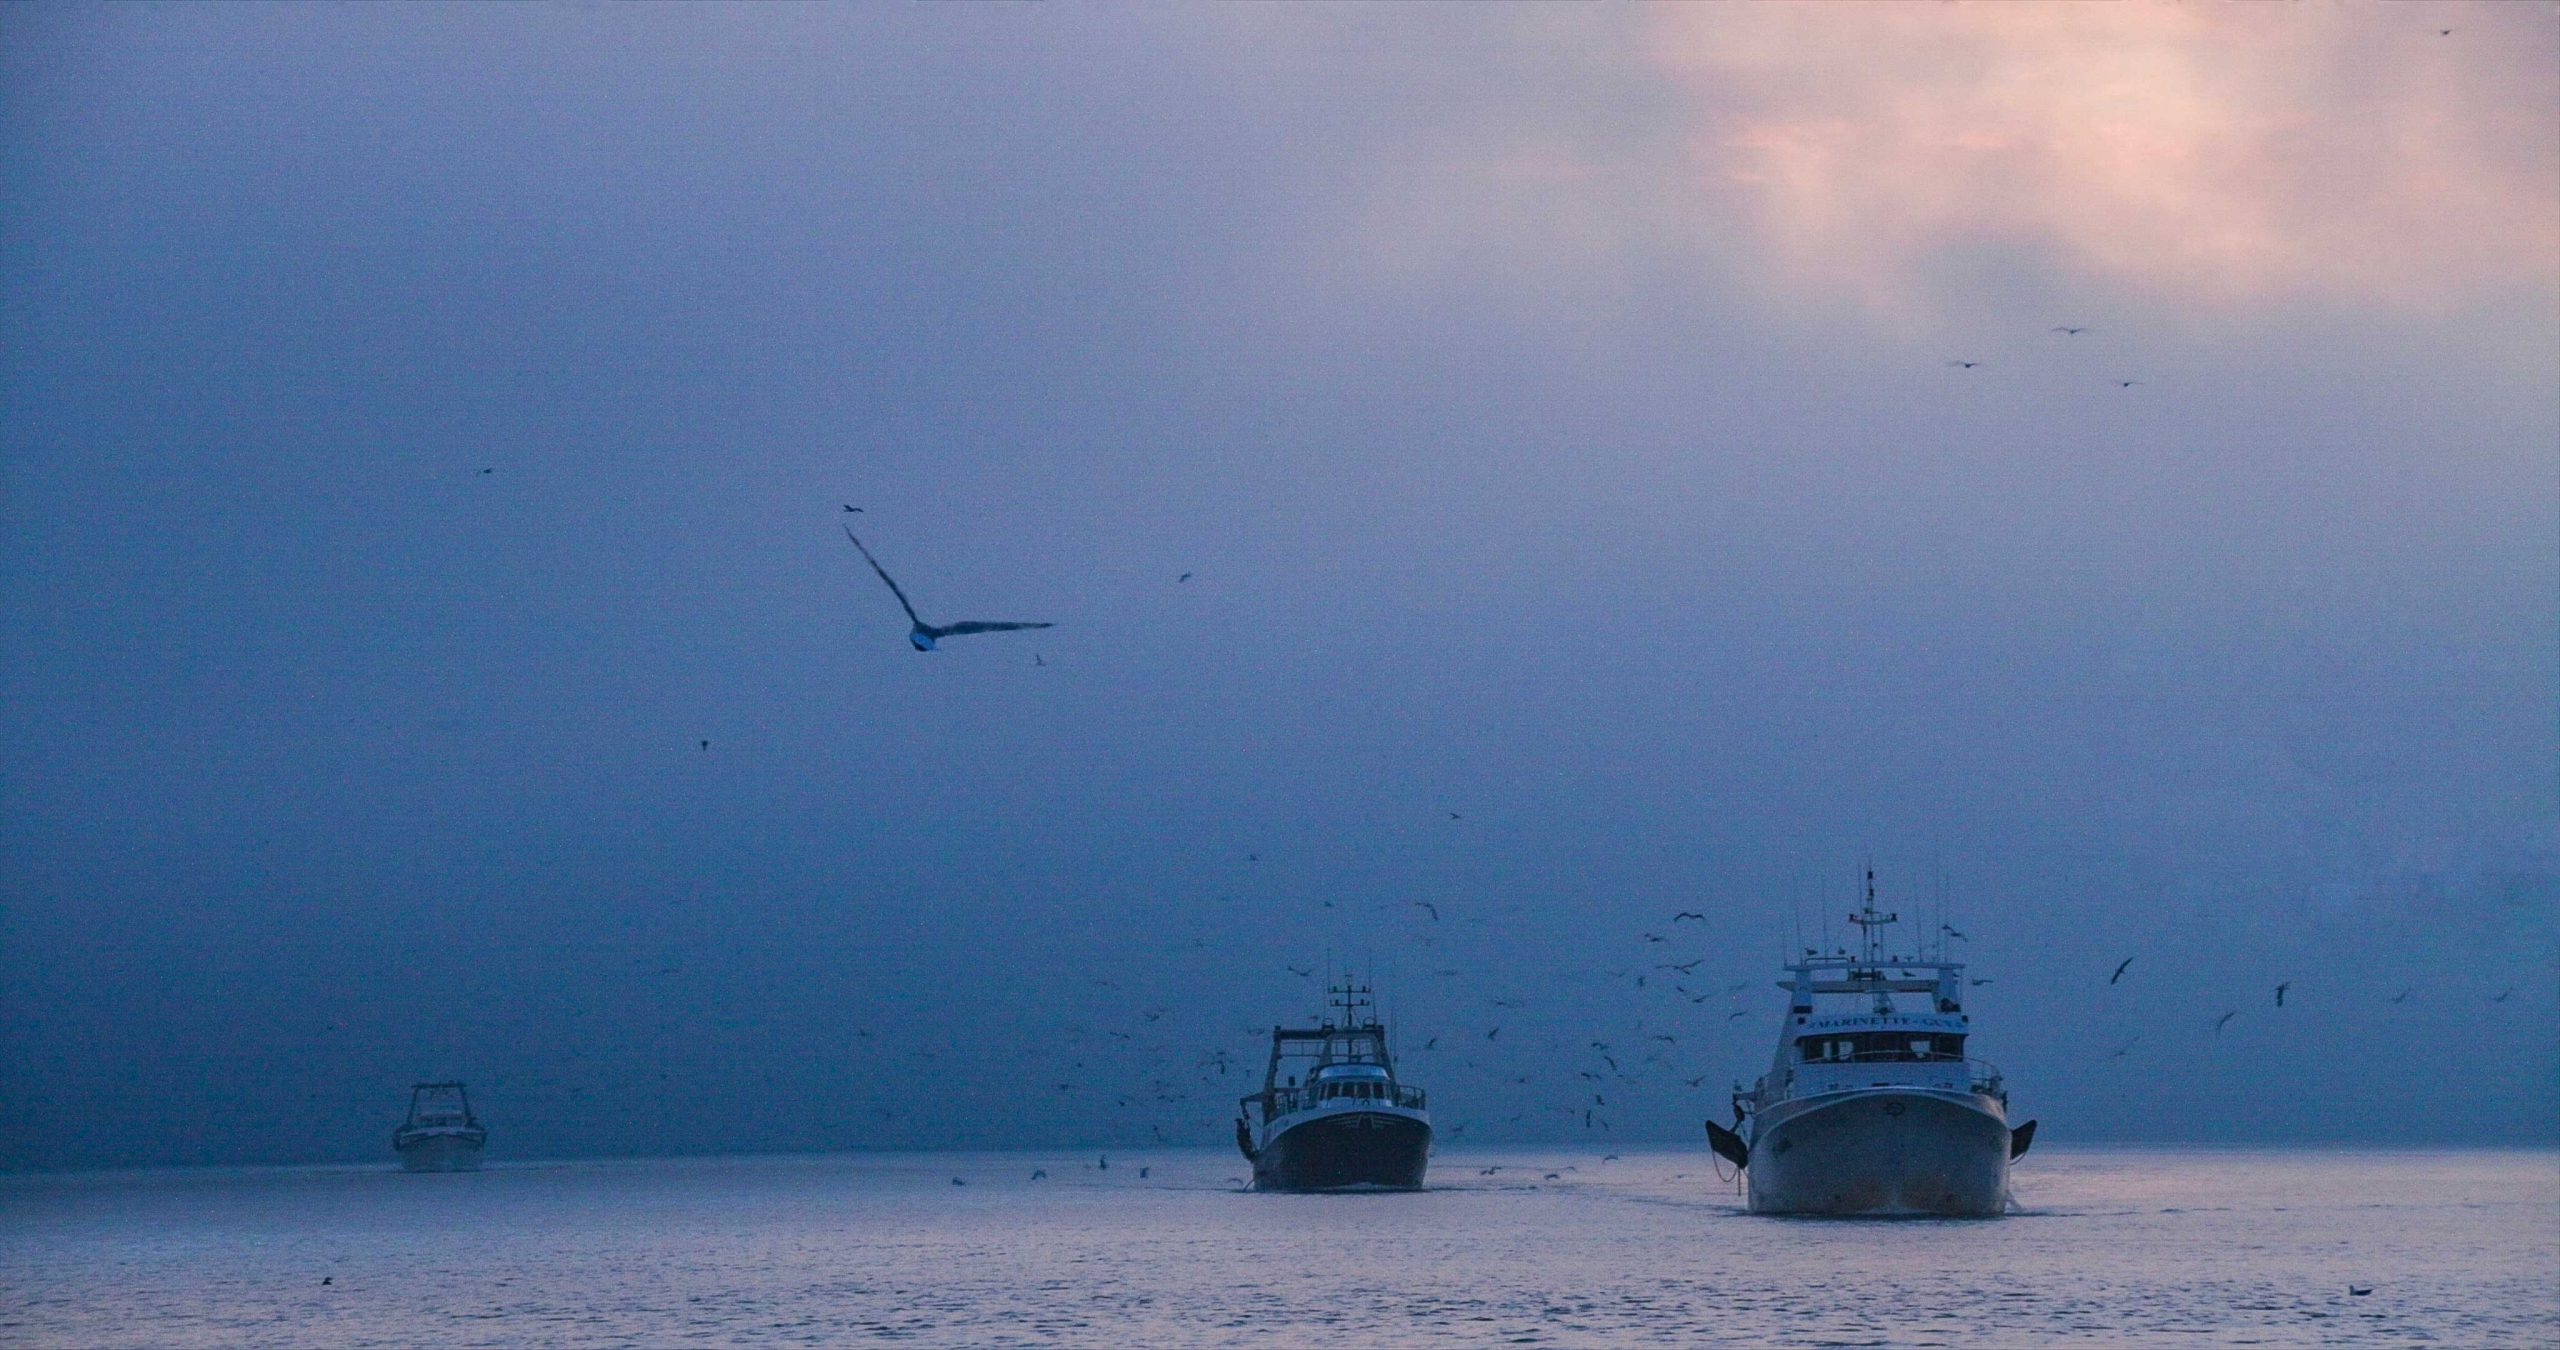 Photograph of a trawler processed with HDRinstant